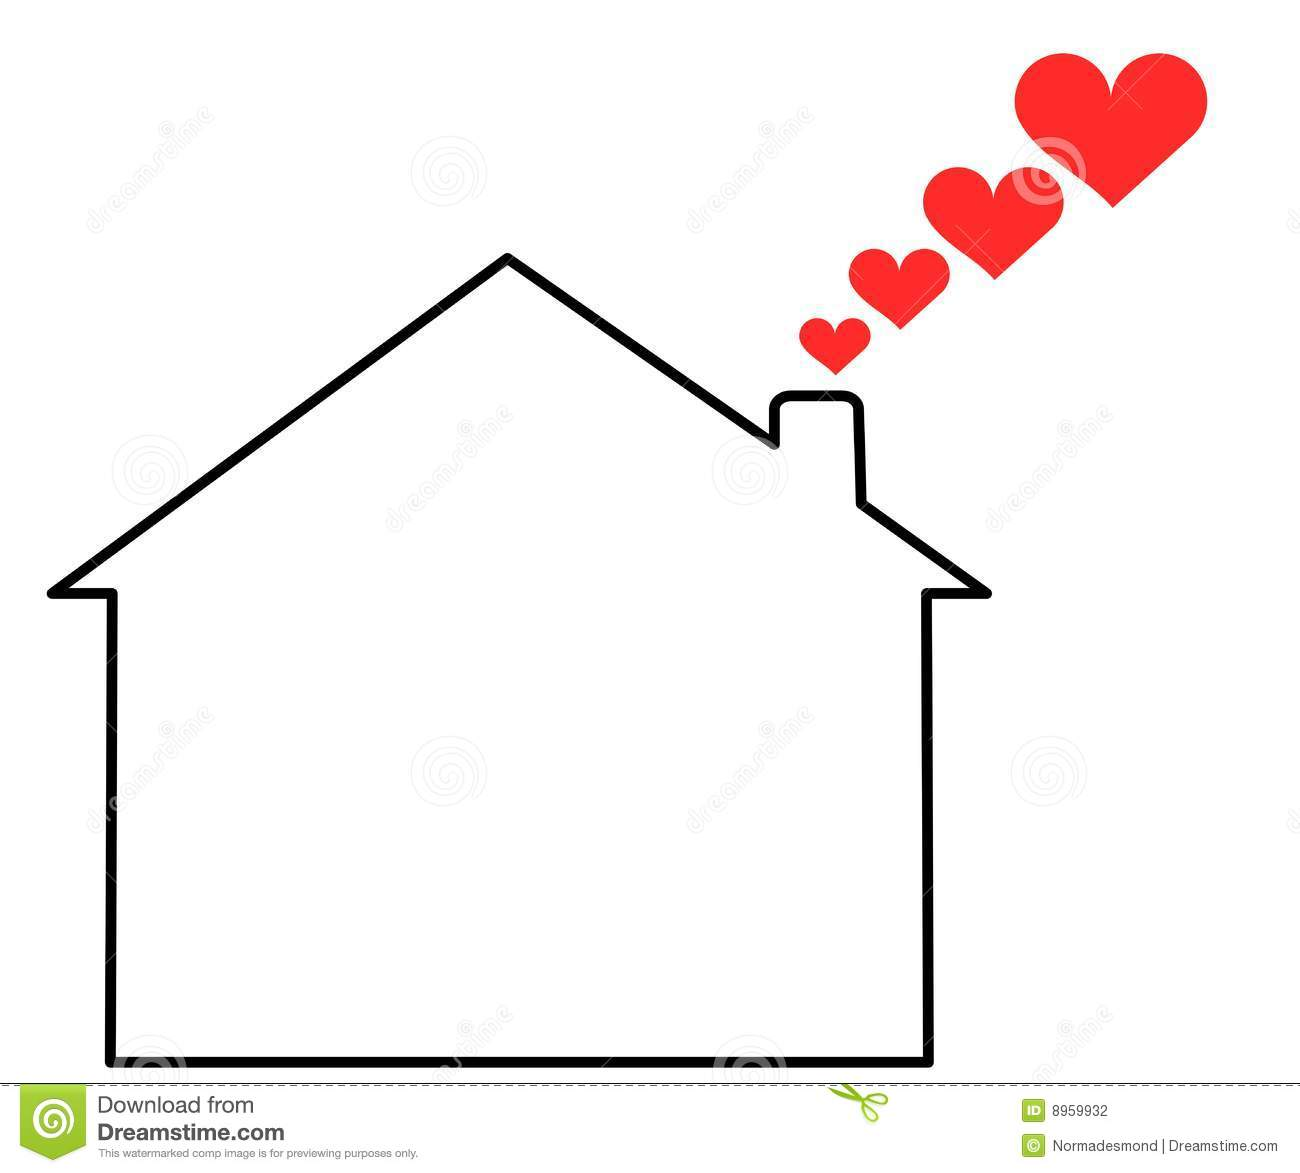 Home love stock photography image 8959932 for Lovers home